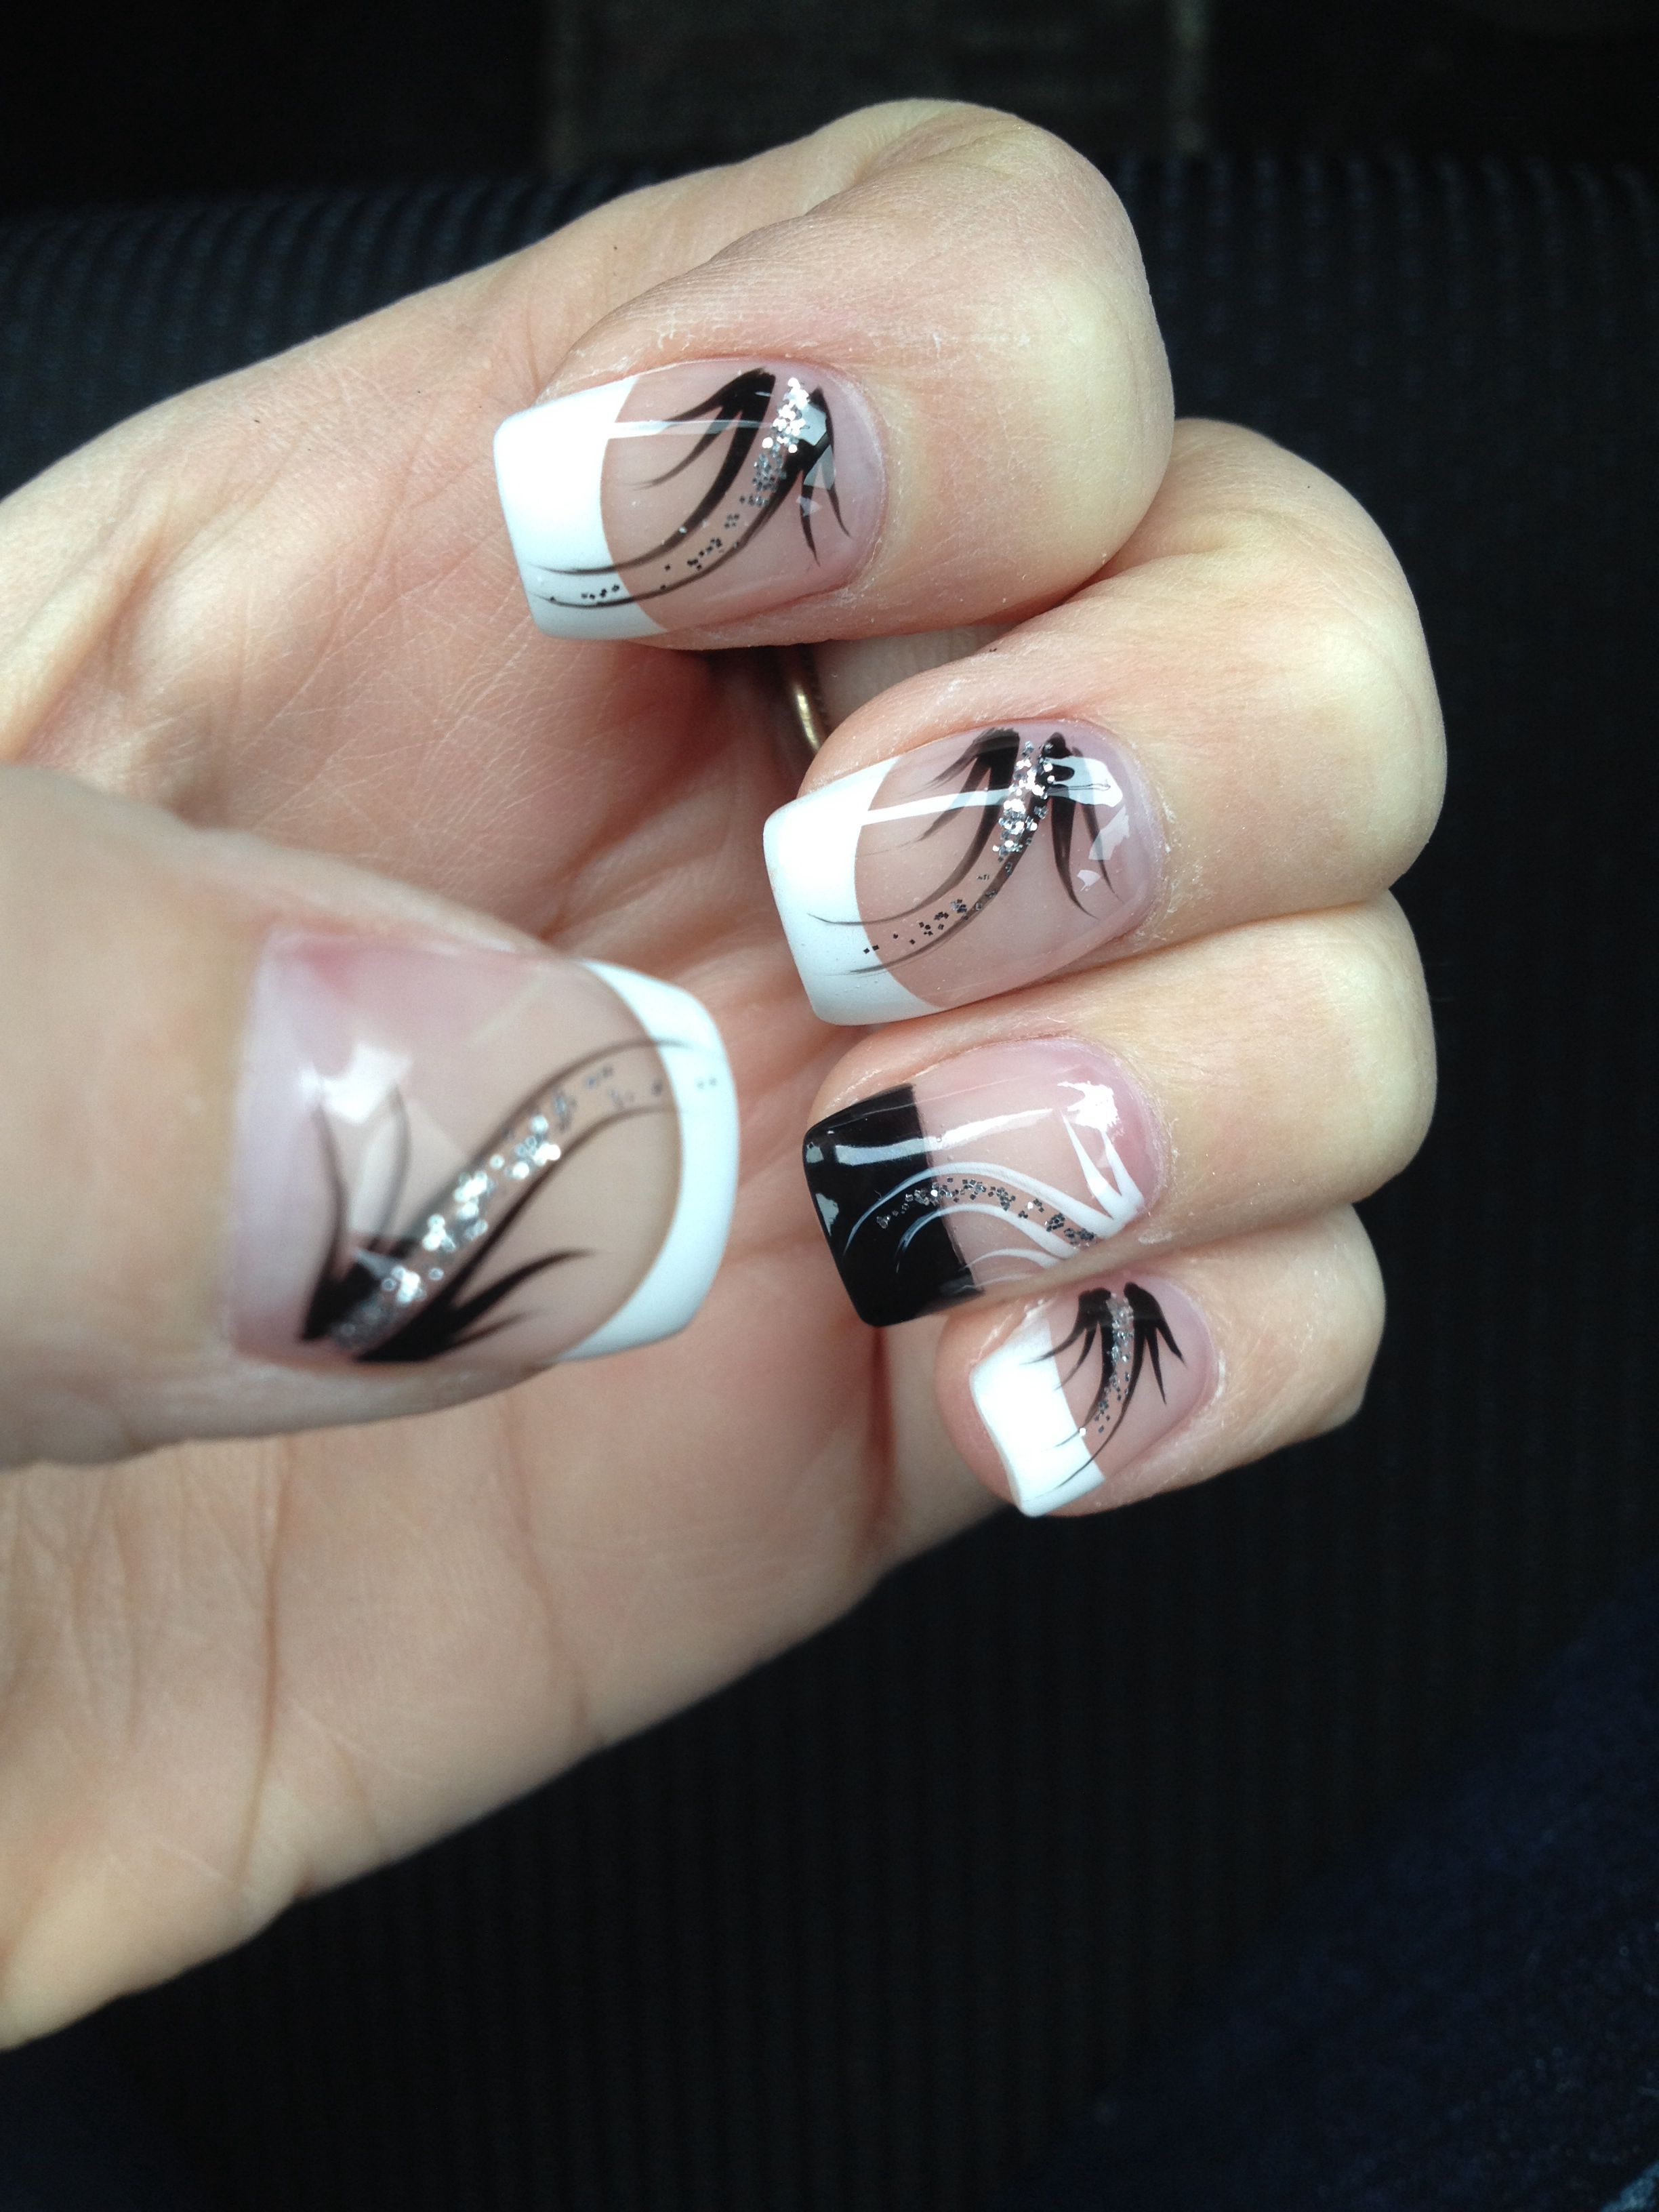 French Manicure With Black Accent Nail And Design